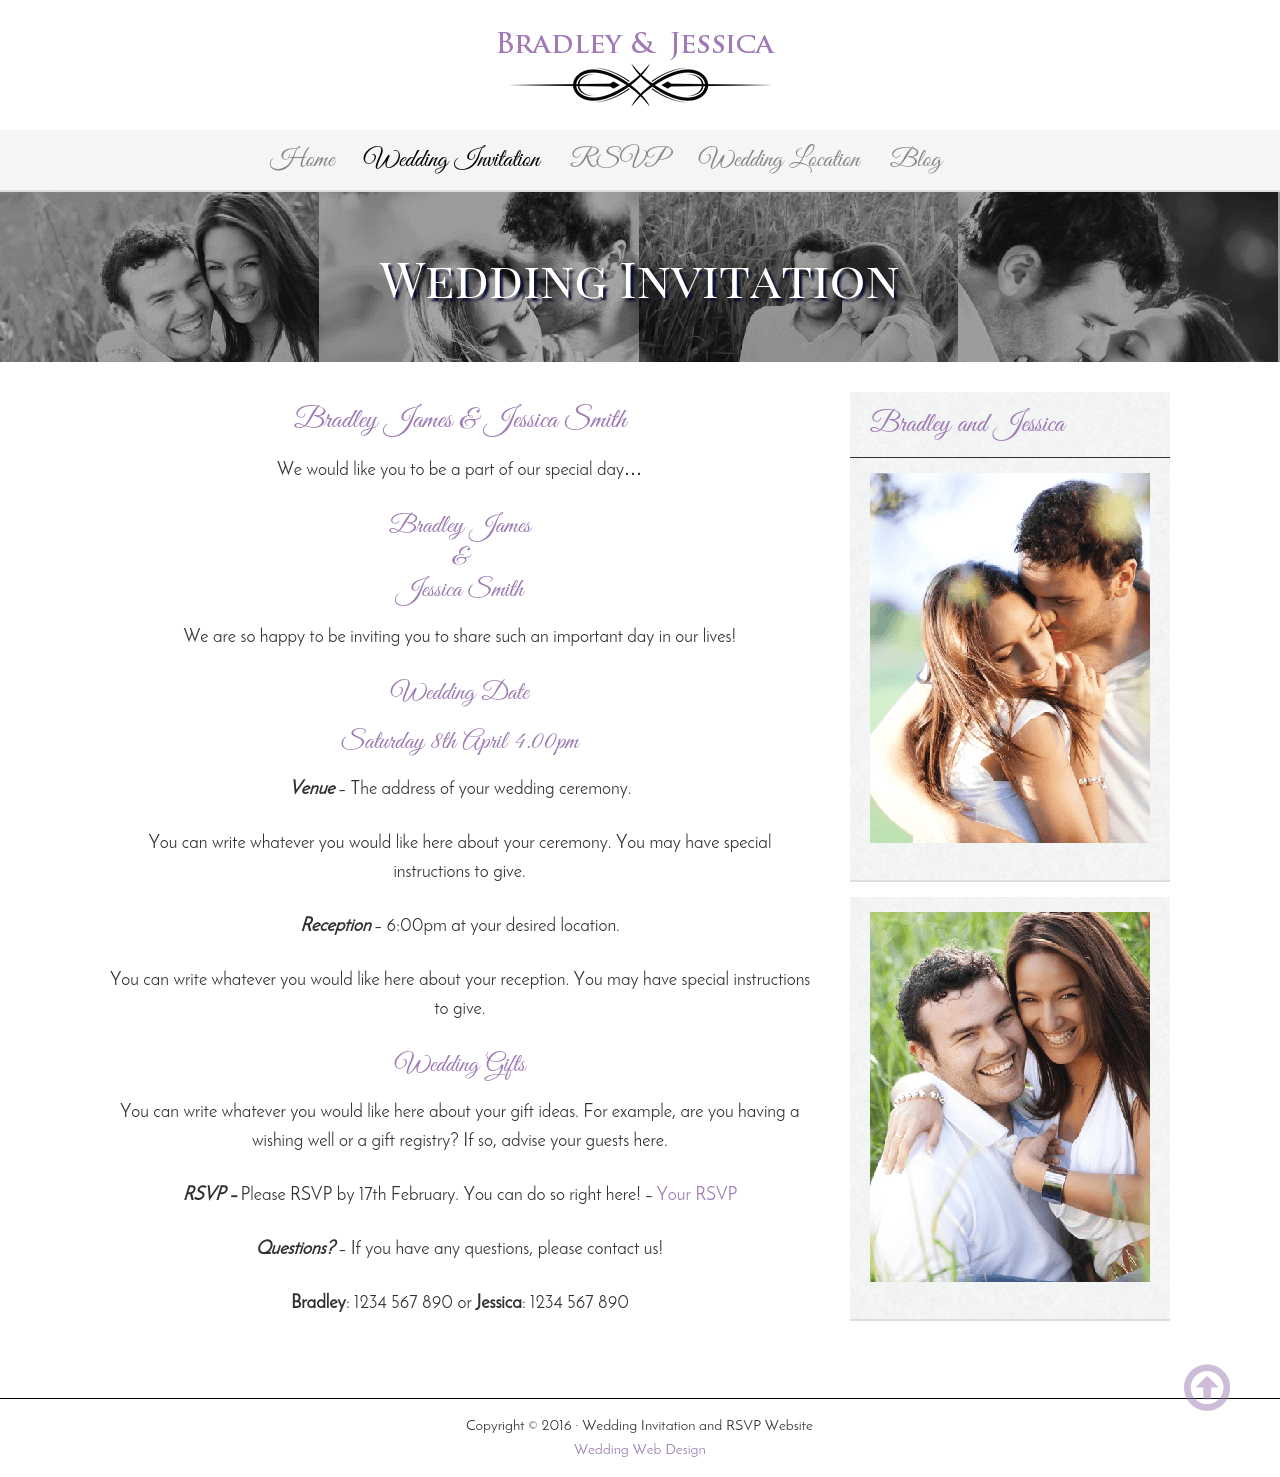 Wedding Rsvp Website Page Showing Website Details Nice Designs